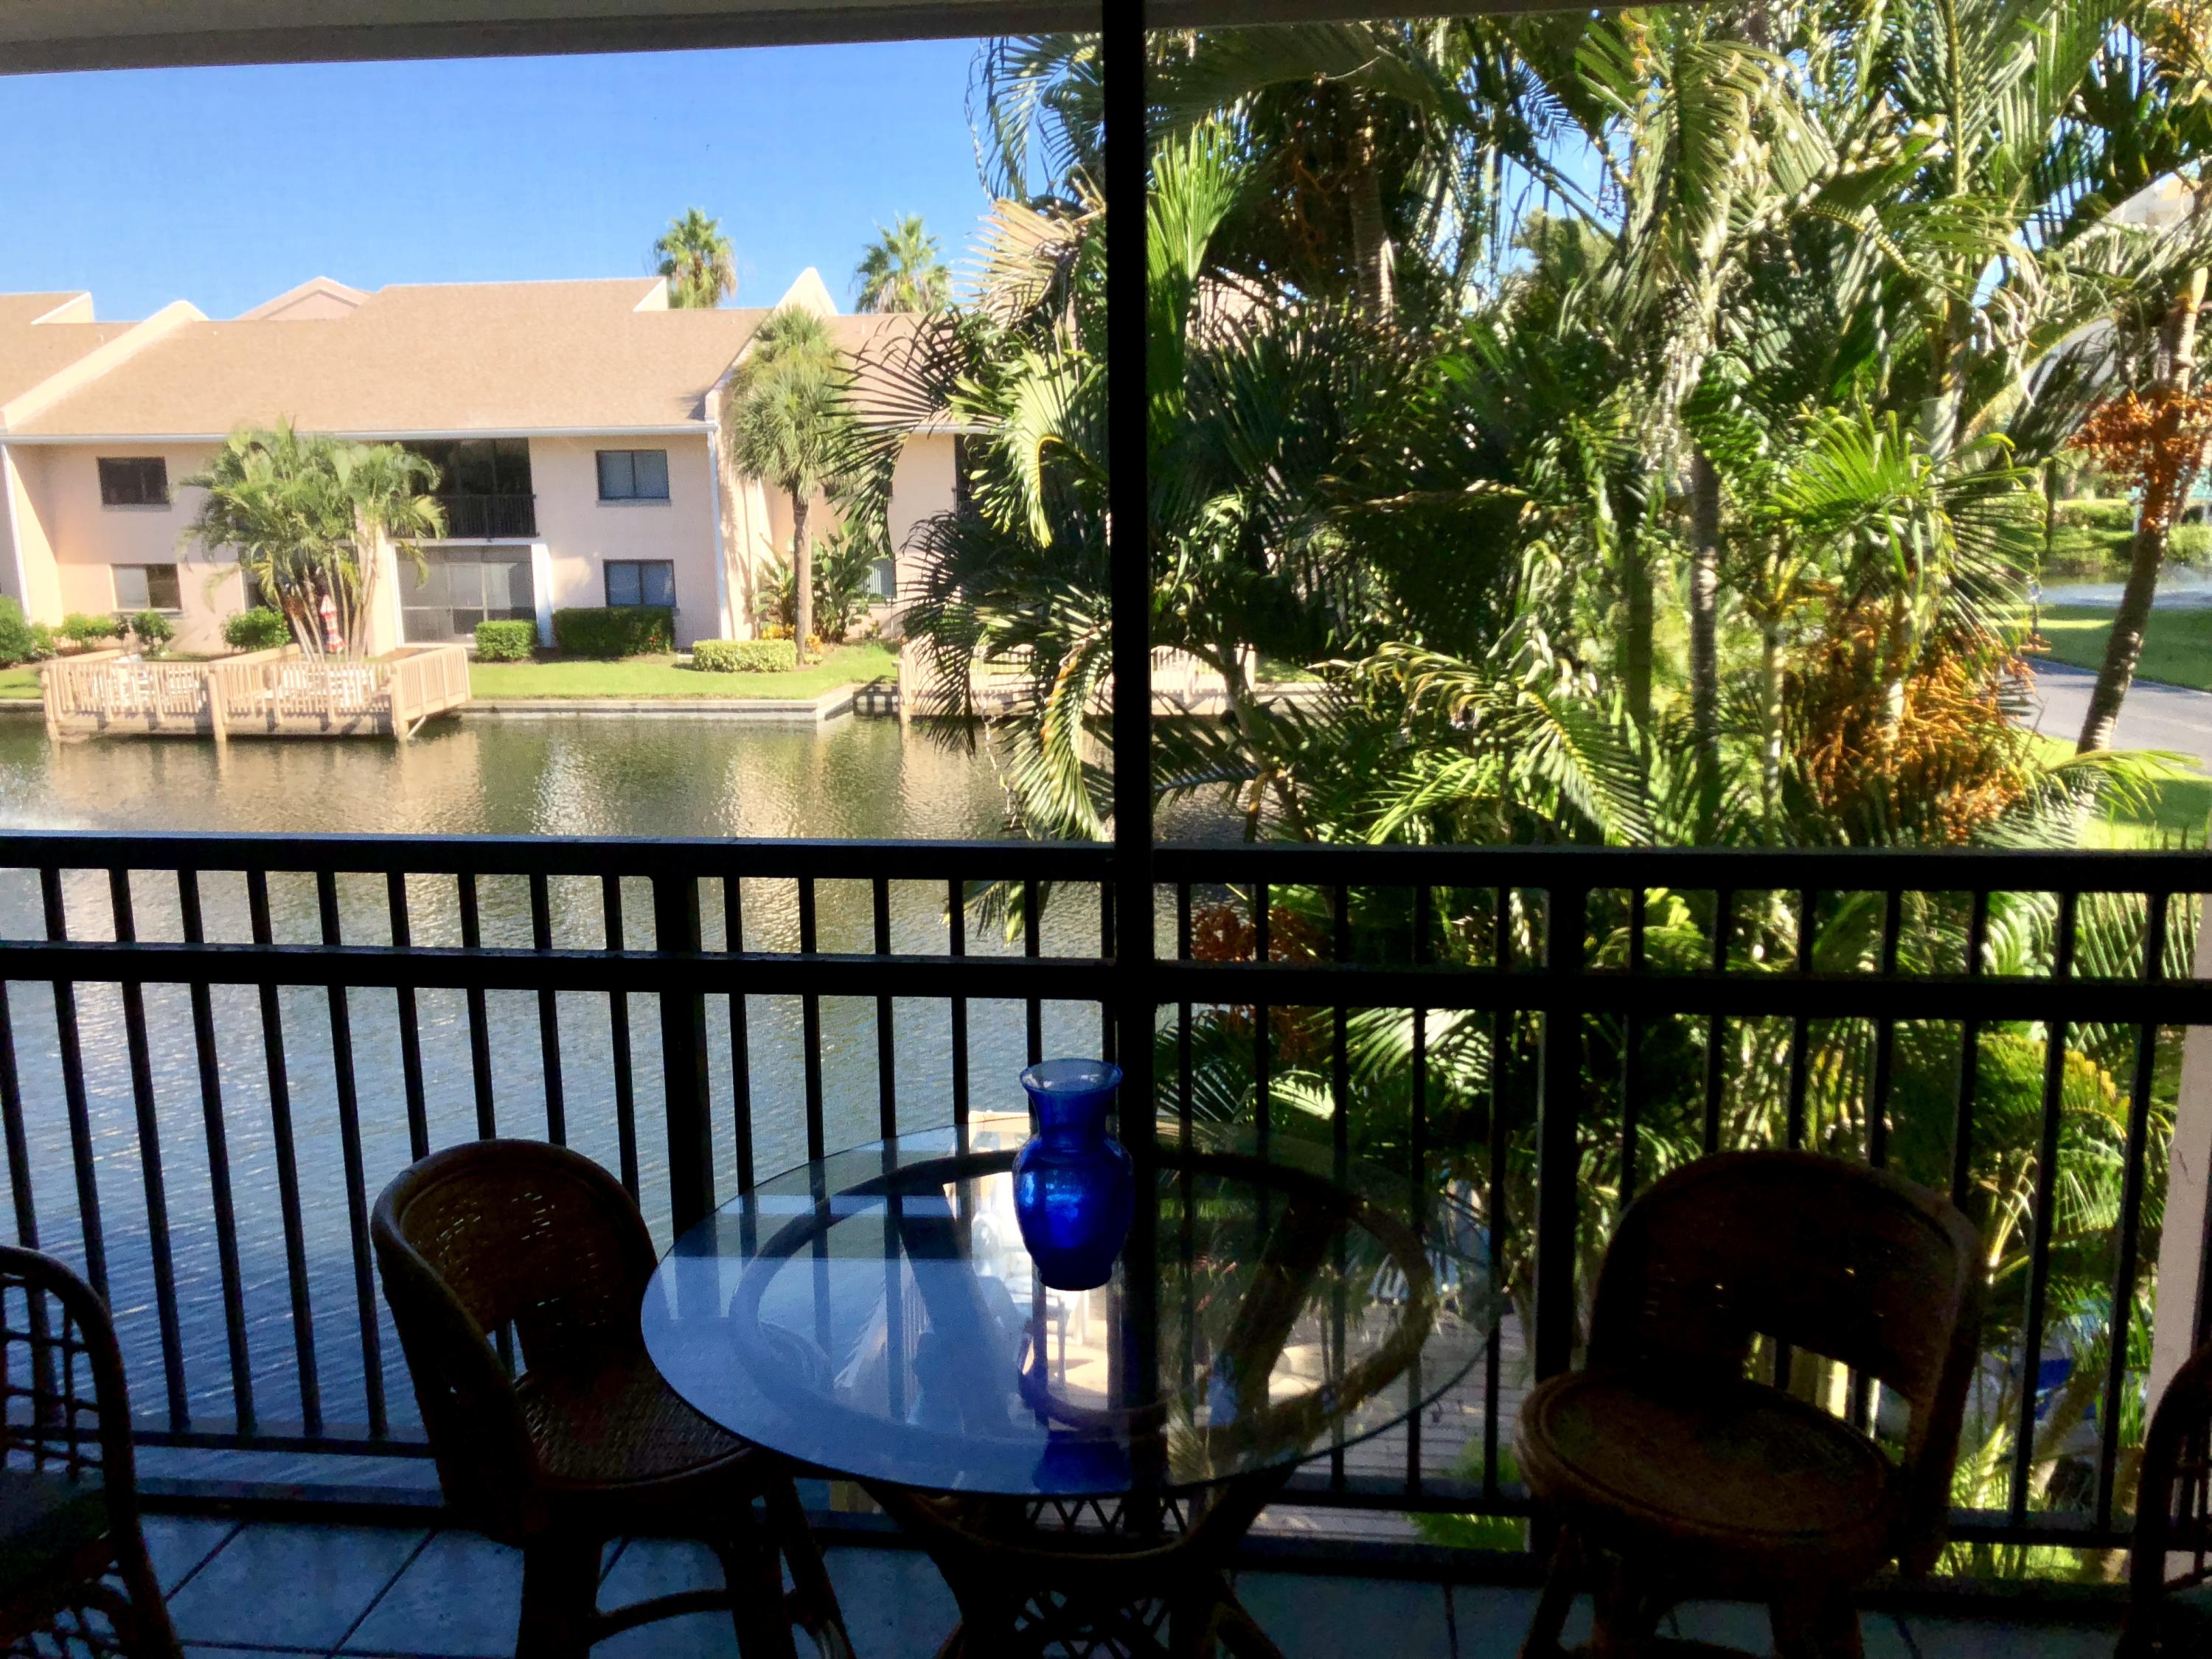 2400 Ocean Drive, Fort Pierce, Florida 34949, 2 Bedrooms Bedrooms, ,2 BathroomsBathrooms,Condo/Coop,For Rent,BEACHTREE I CLUSTER, A CONDOMINIUM,Ocean,2,RX-10464176